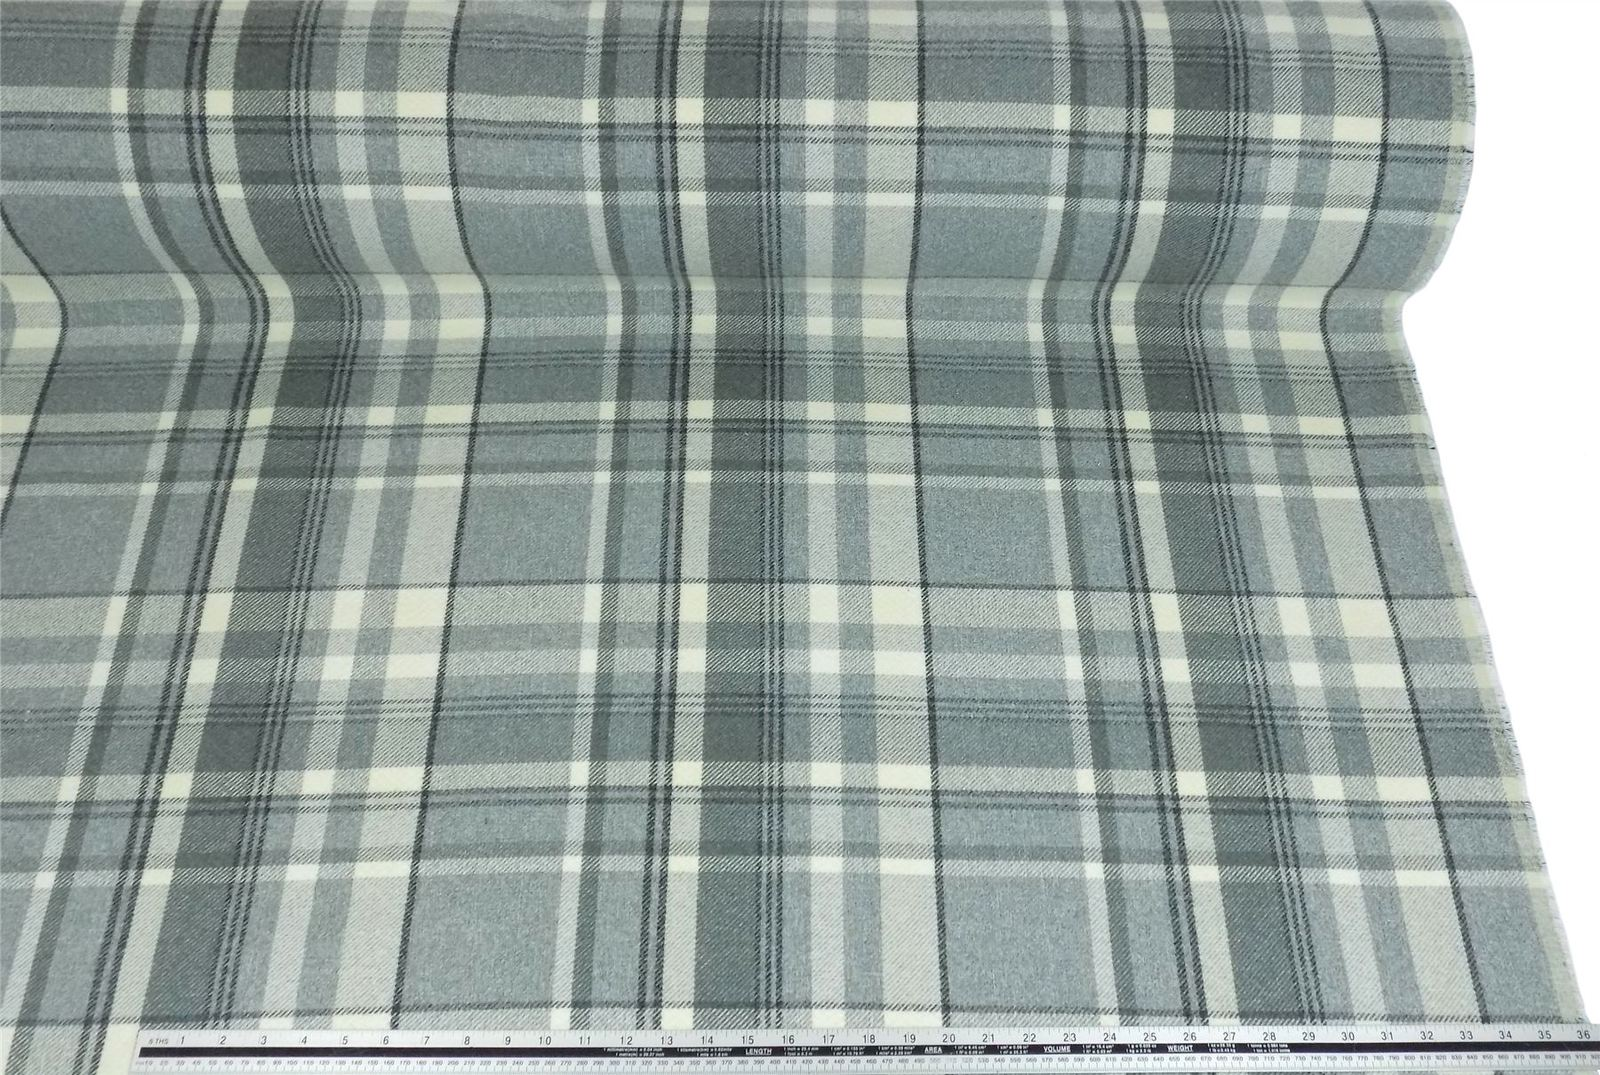 Tartan Check Wool Look and Feel Grey Cream Upholstery Fabric Material 3 Sizes